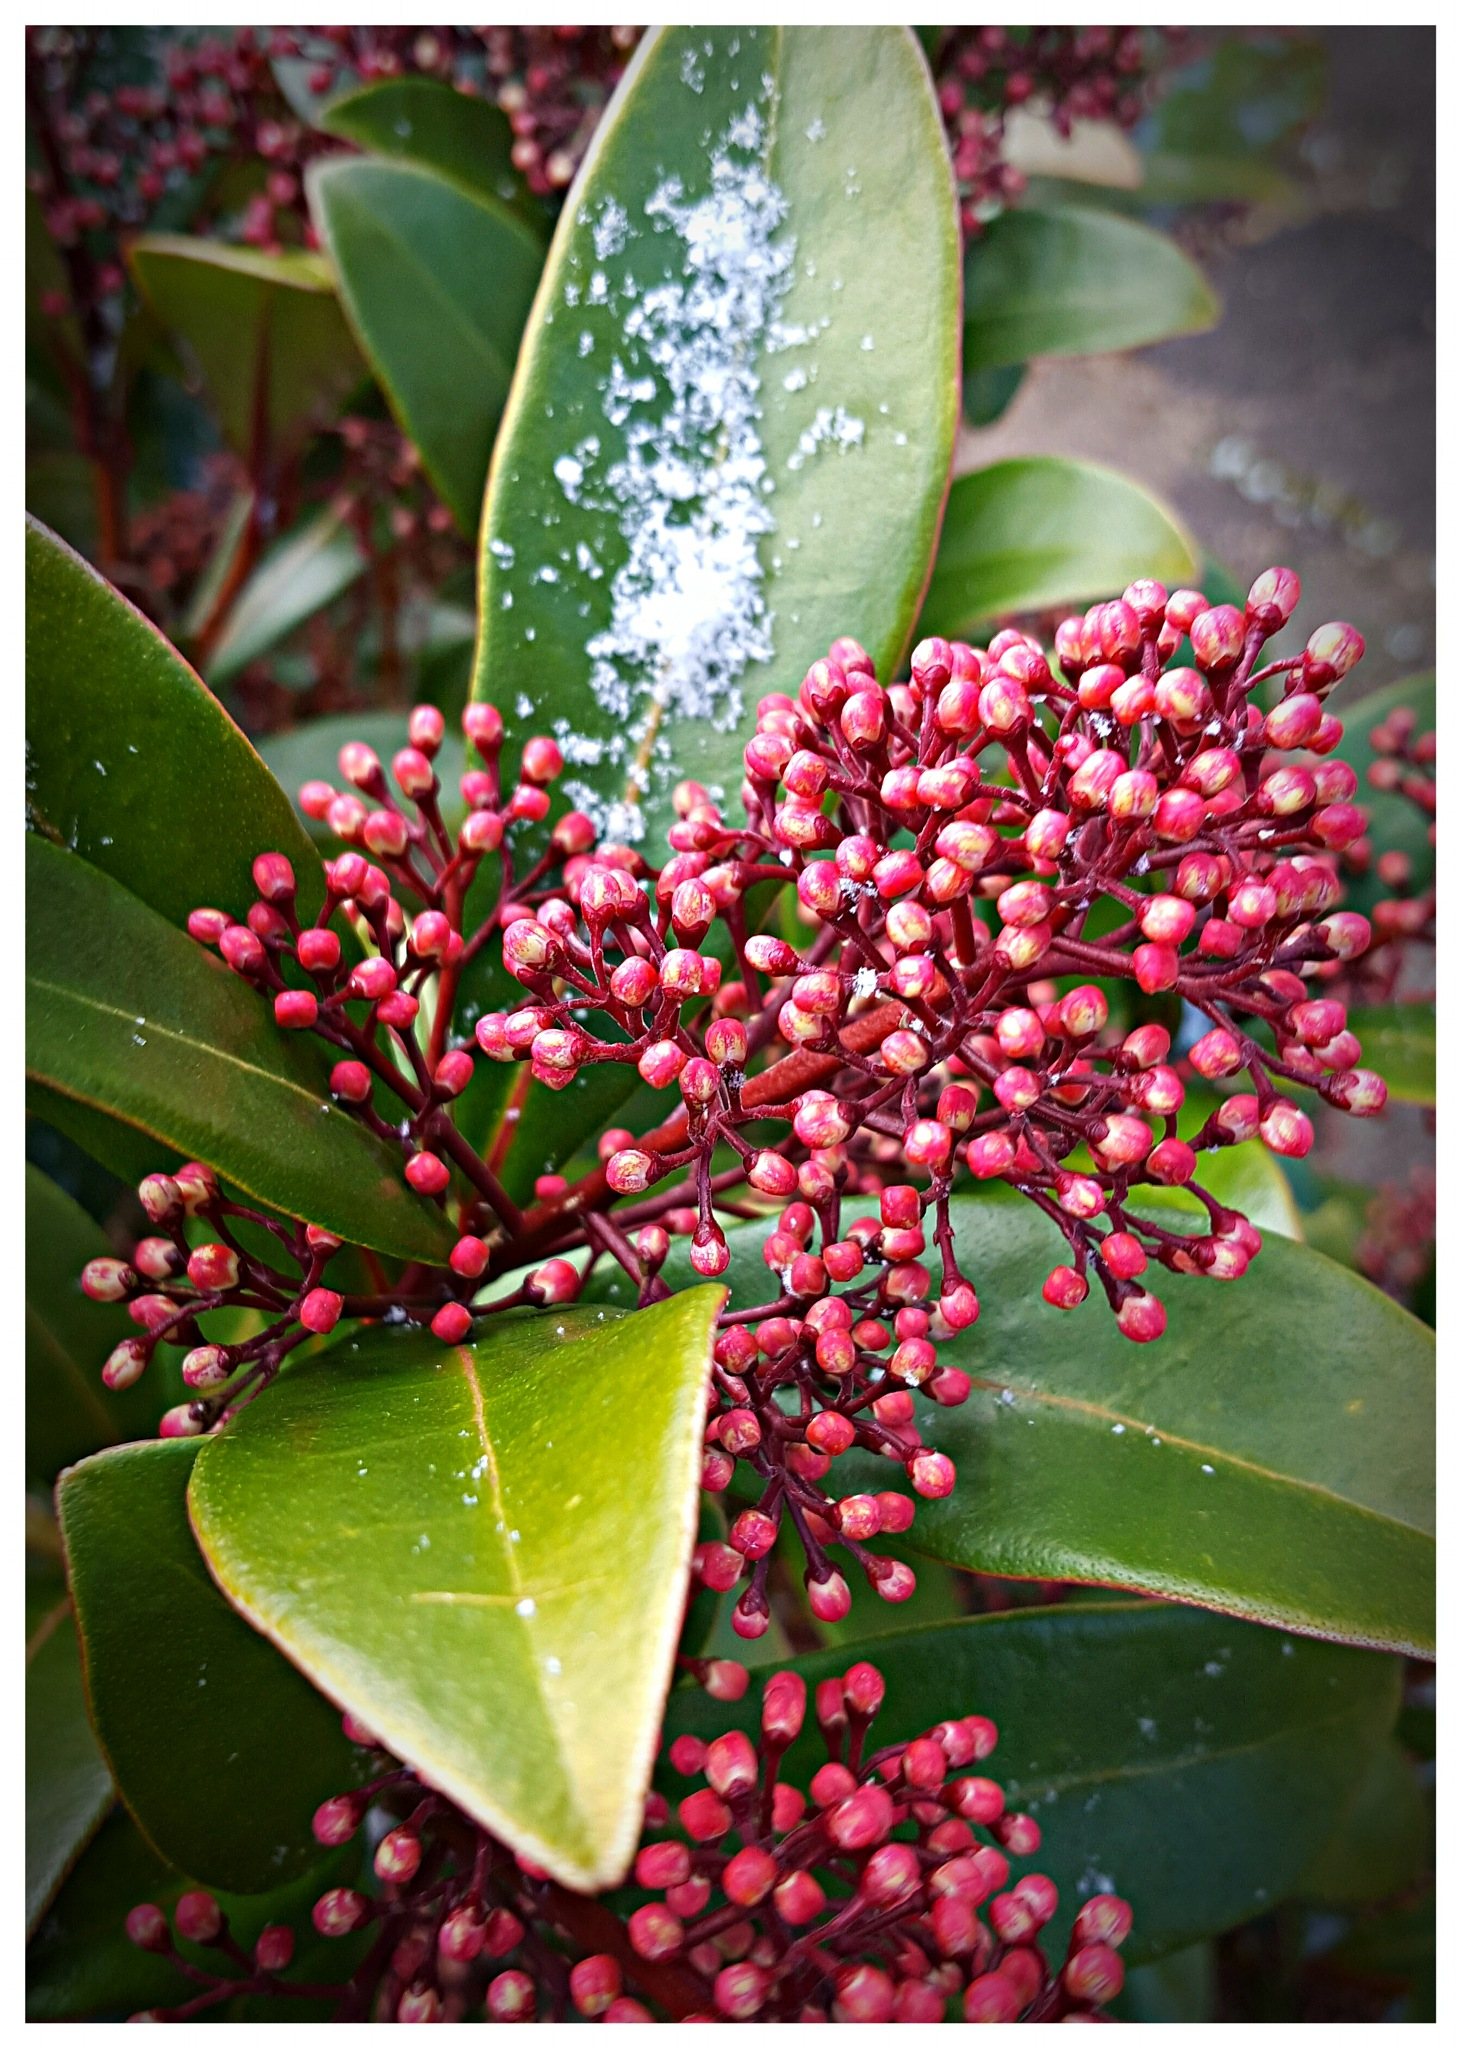 Skimmia in the Snow by Yvonne Lewis